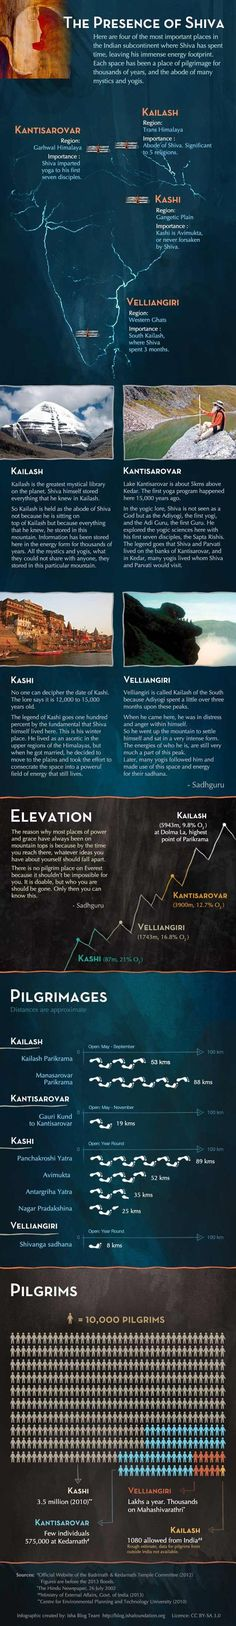 The Presence of Shiva Infographic